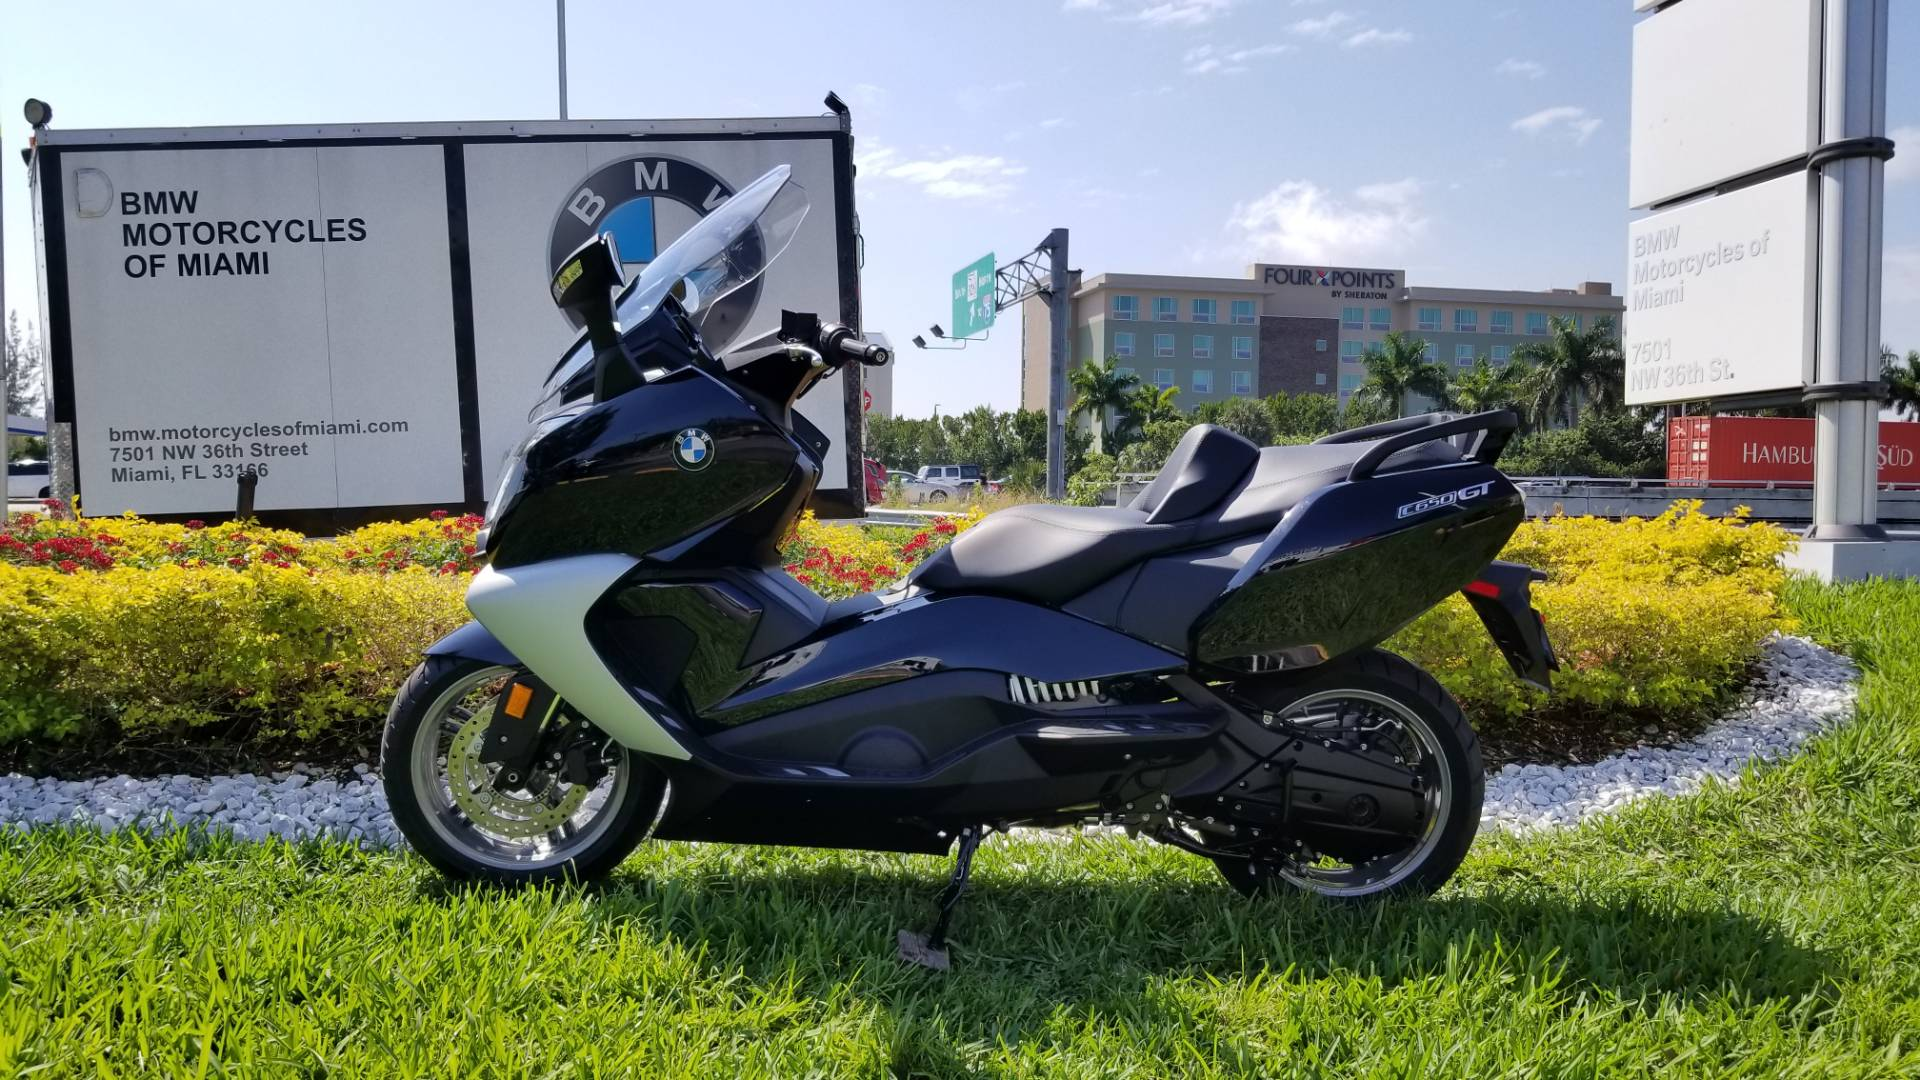 New 2019 BMW C 650 GT for sale, BMW C 650GT for sale, BMW Motorcycle C650GT, new BMW Scooter, Maxi Scooter, BMW. BMW Motorcycles of Miami, Motorcycles of Miami, Motorcycles Miami, New Motorcycles, Used Motorcycles, pre-owned. #BMWMotorcyclesOfMiami #MotorcyclesOfMiami #MotorcyclesMiami - Photo 2